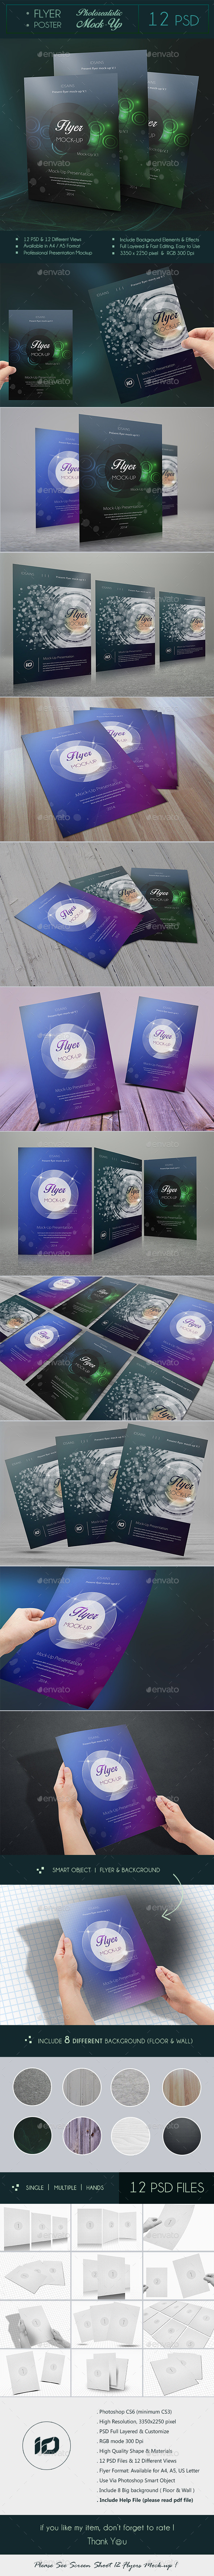 GraphicRiver ID Flyer Mock-Up 9332158